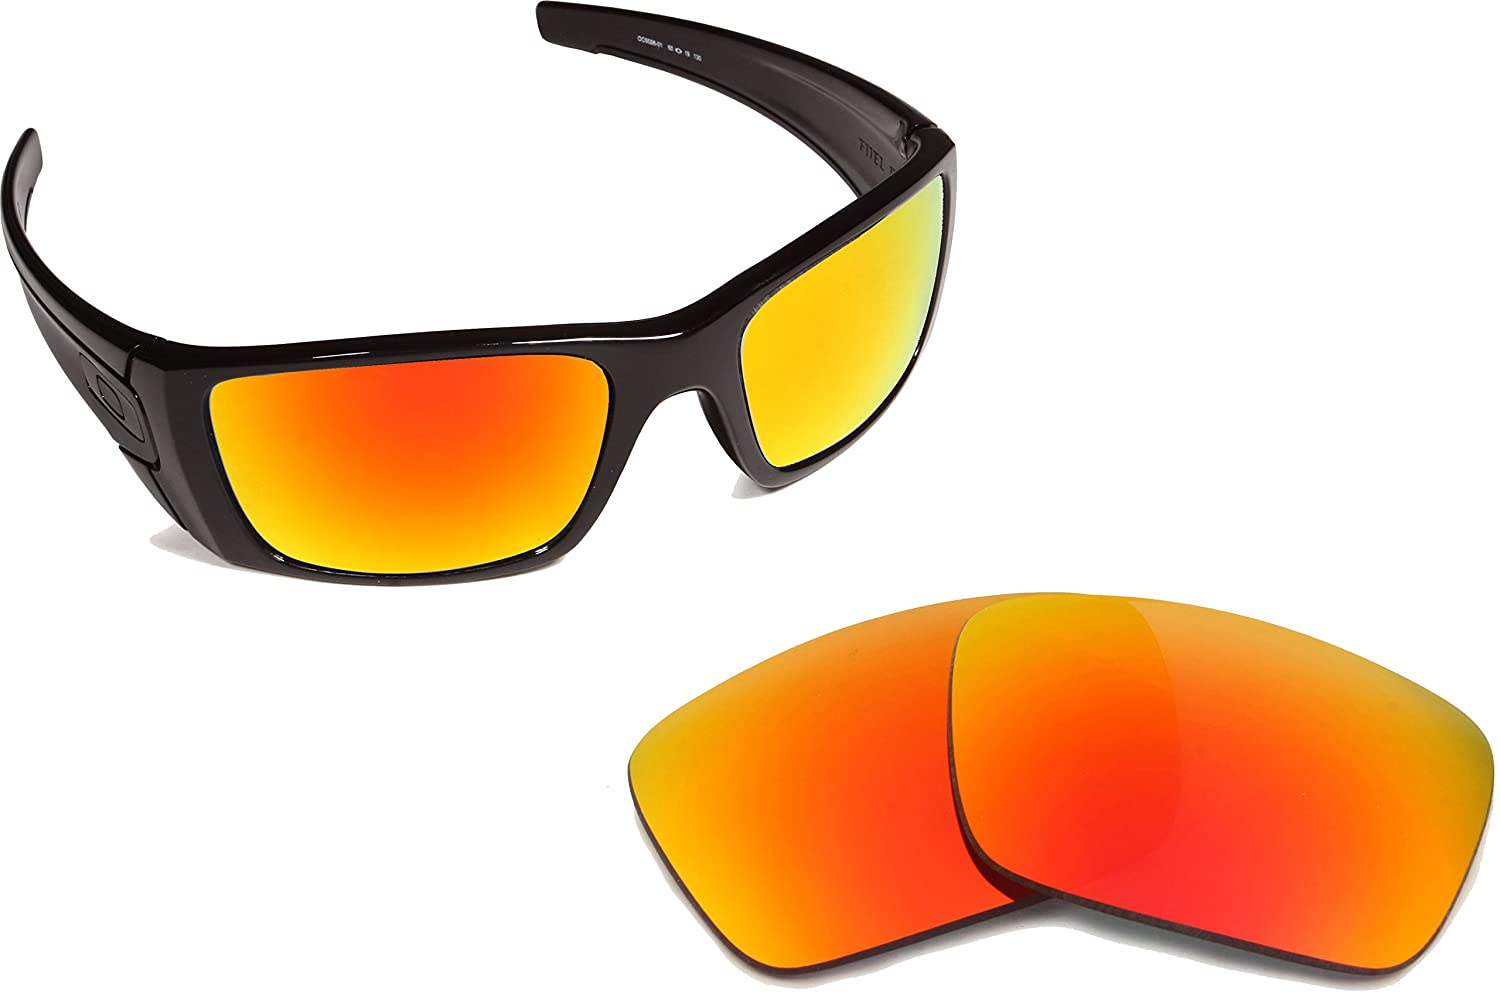 9c035bb4f7 Fuel Cell Replacement Lenses Polarized Red Mirror by SEEK fits OAKLEY  Sunglasses at Amazon Men s Clothing store